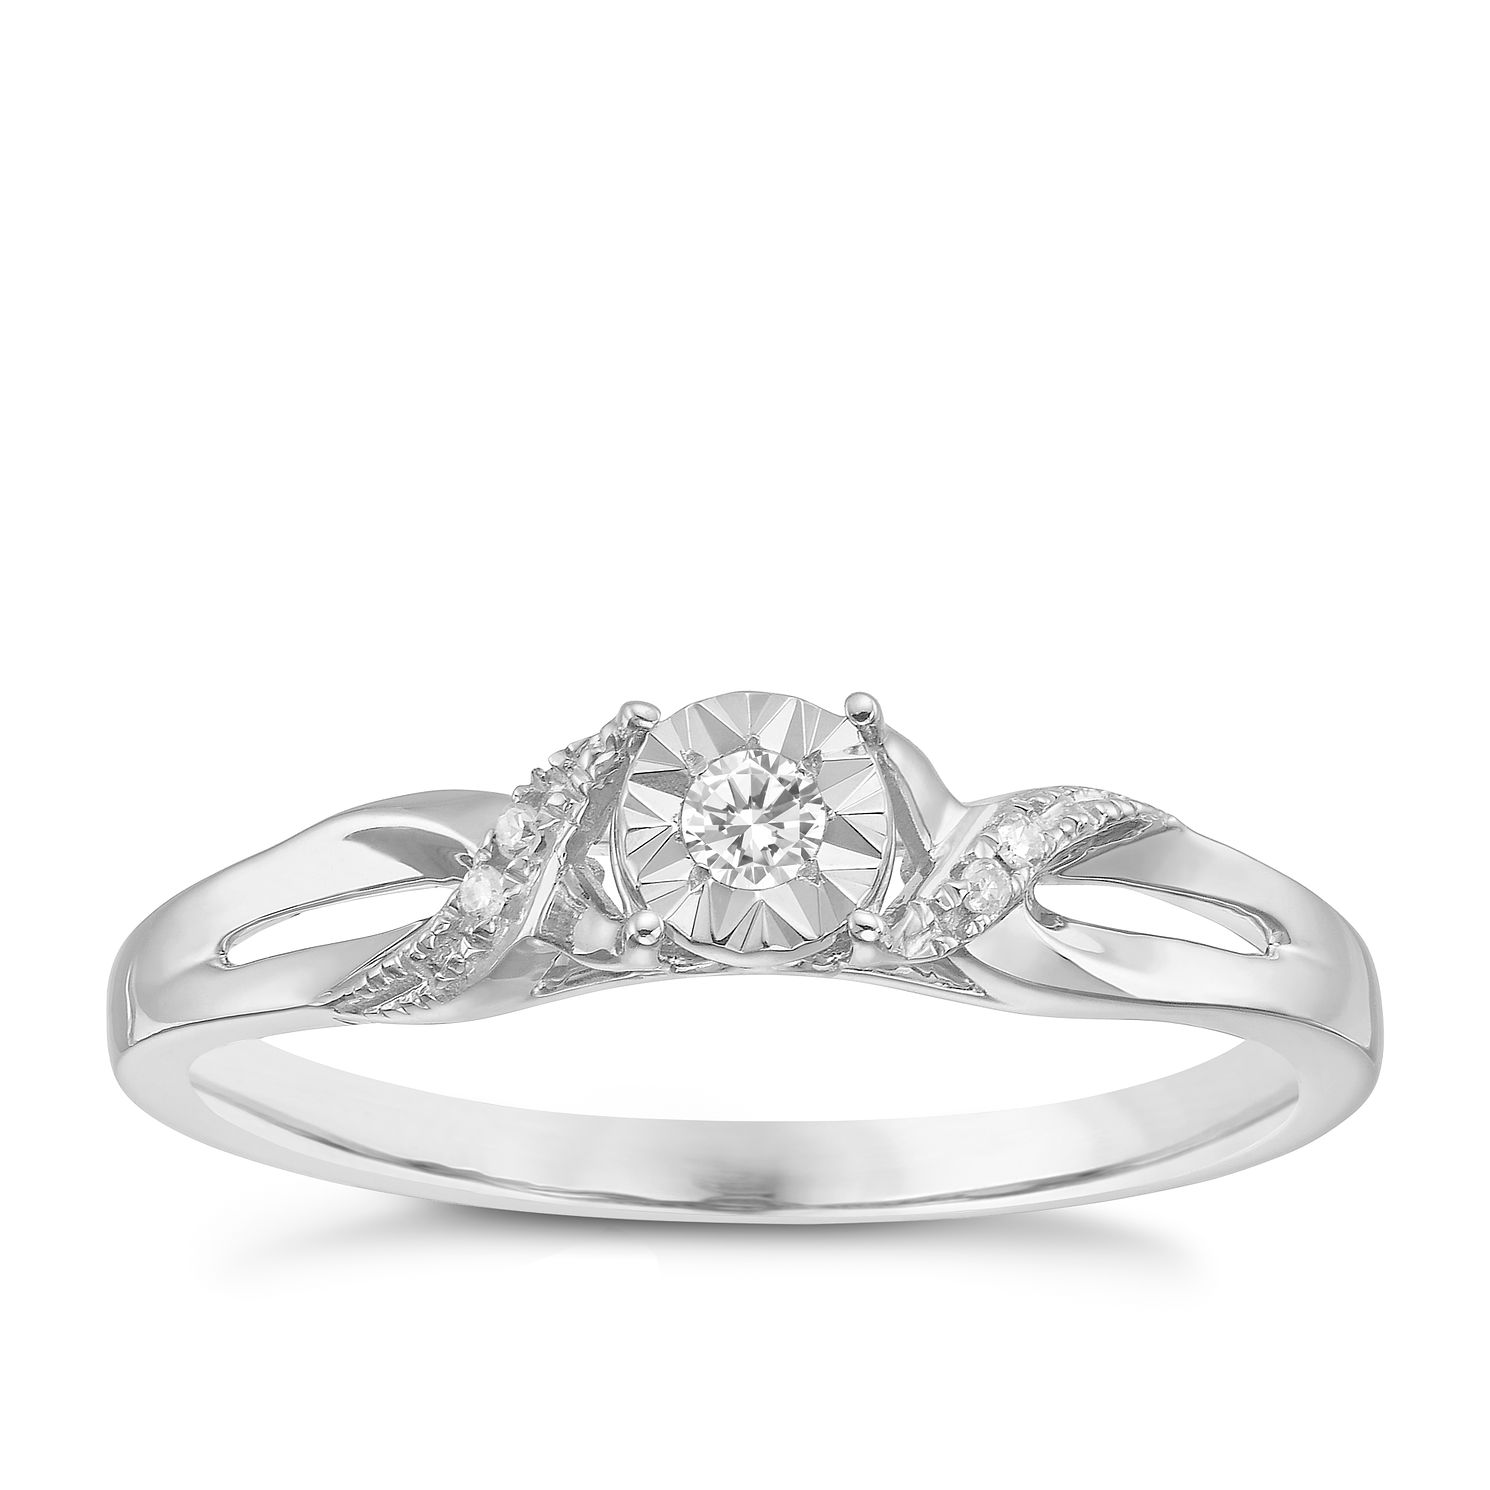 9ct White Gold Diamond Illusion Solitaire Ring - Product number 3875520